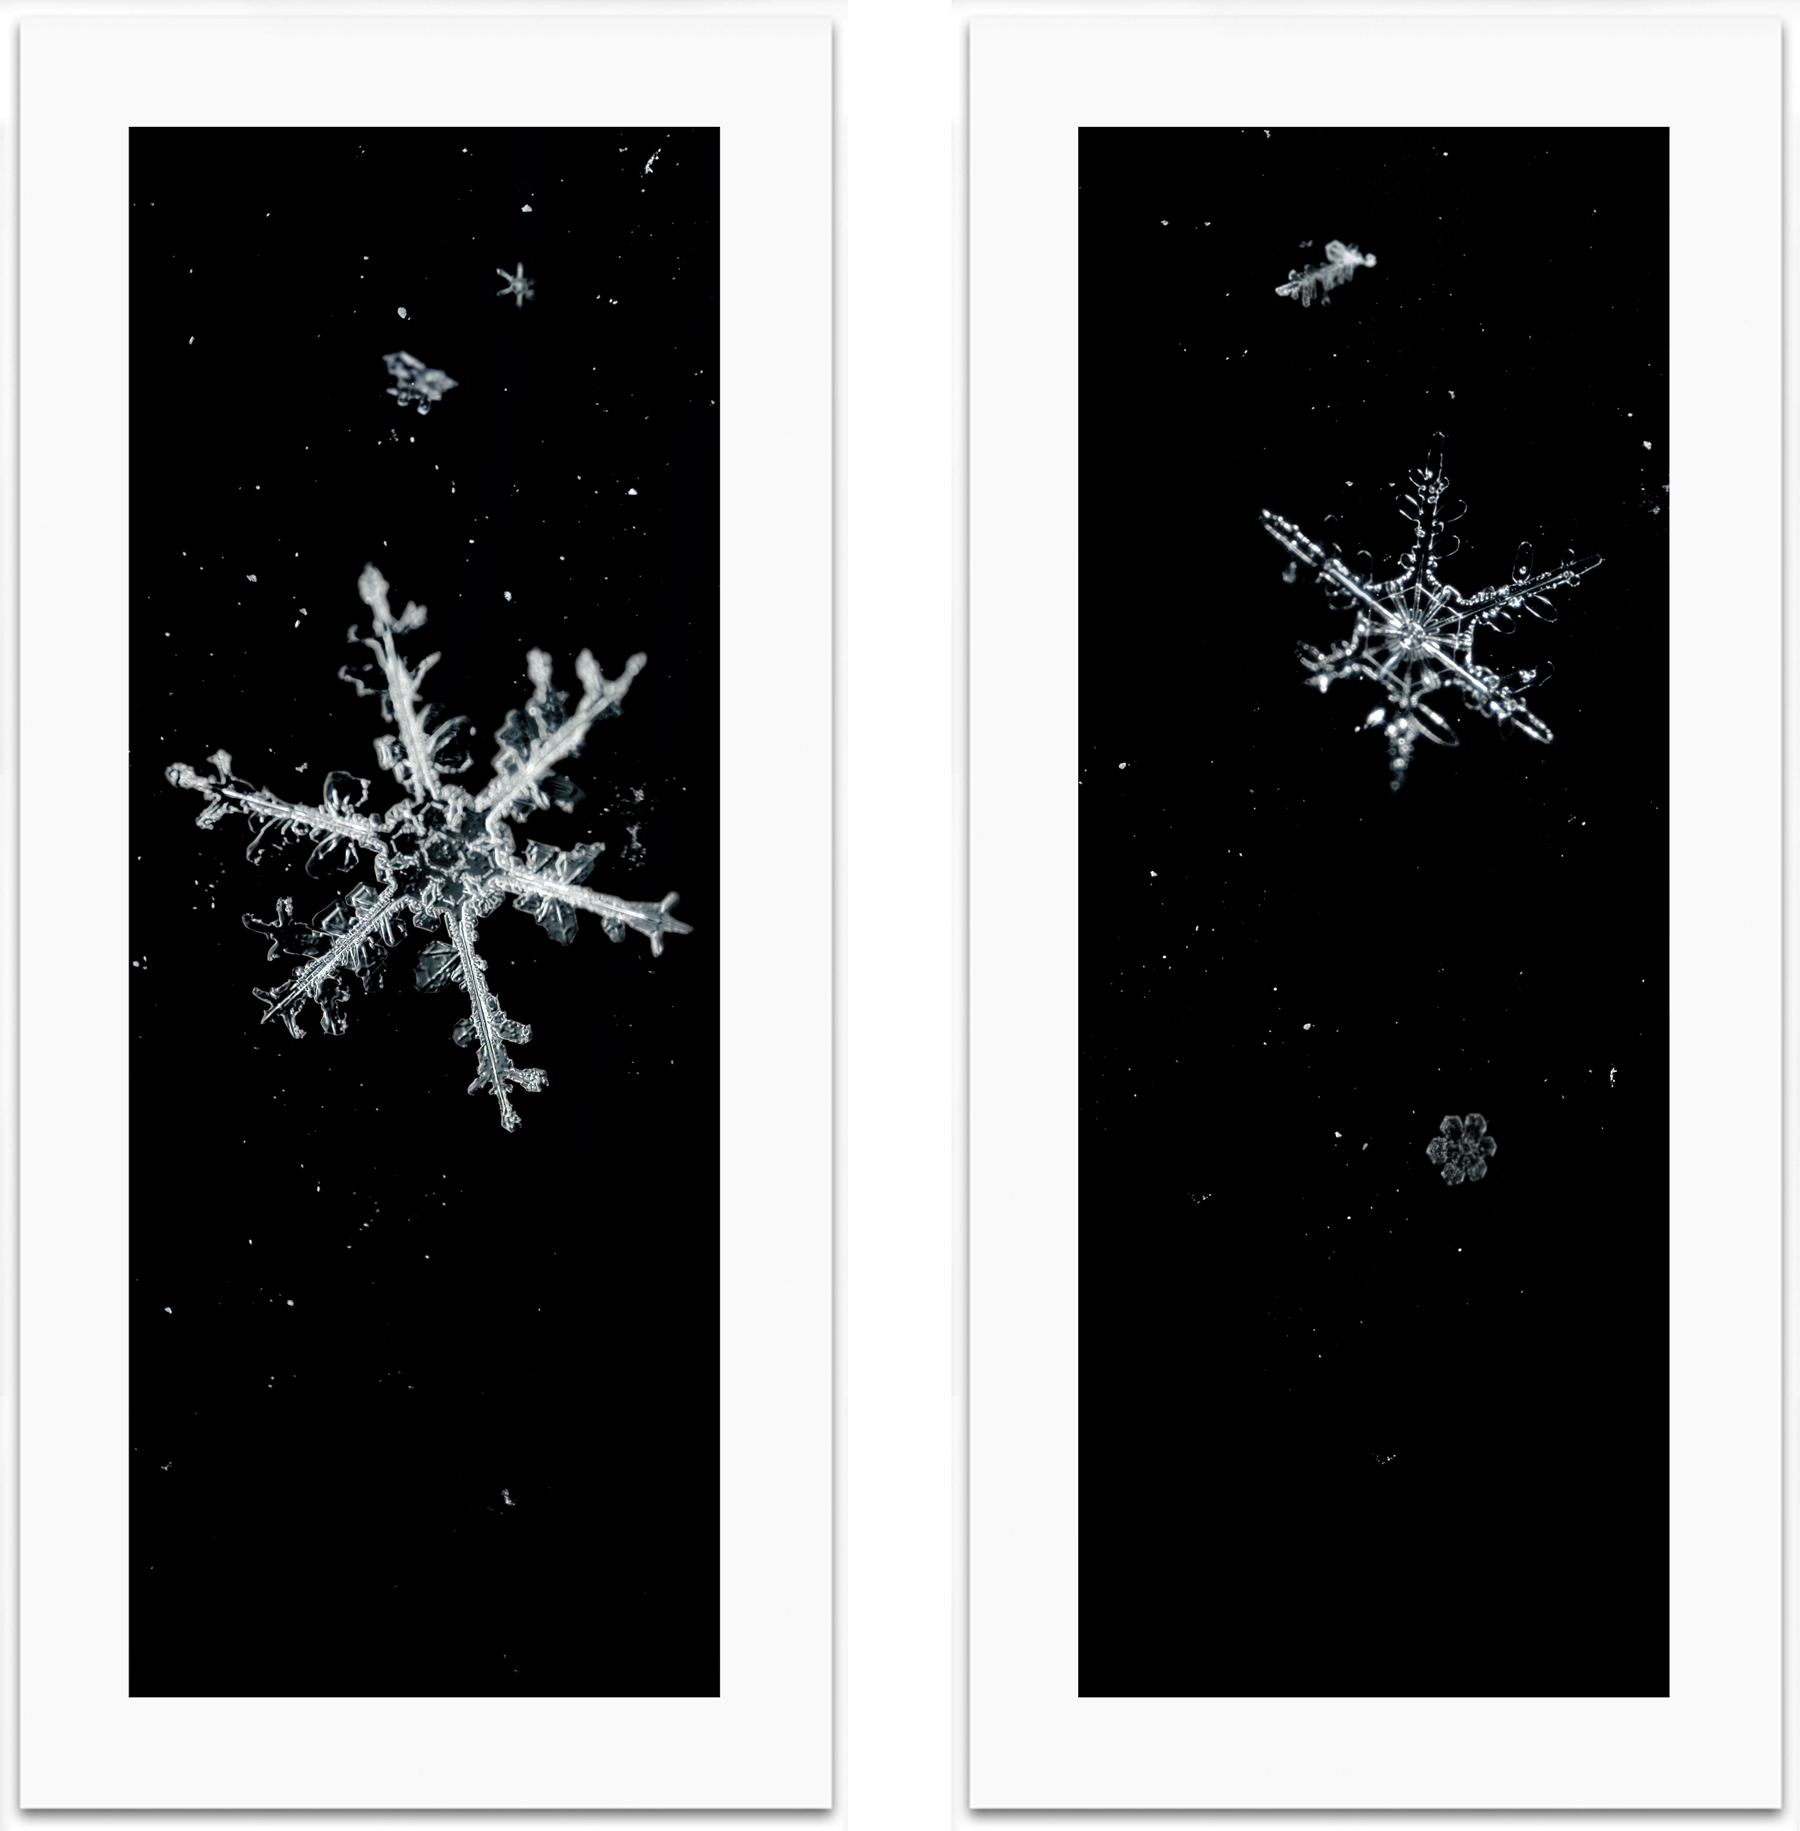 Mike and Doug Starn, Snowfall #1 and #2, 2006-2007.